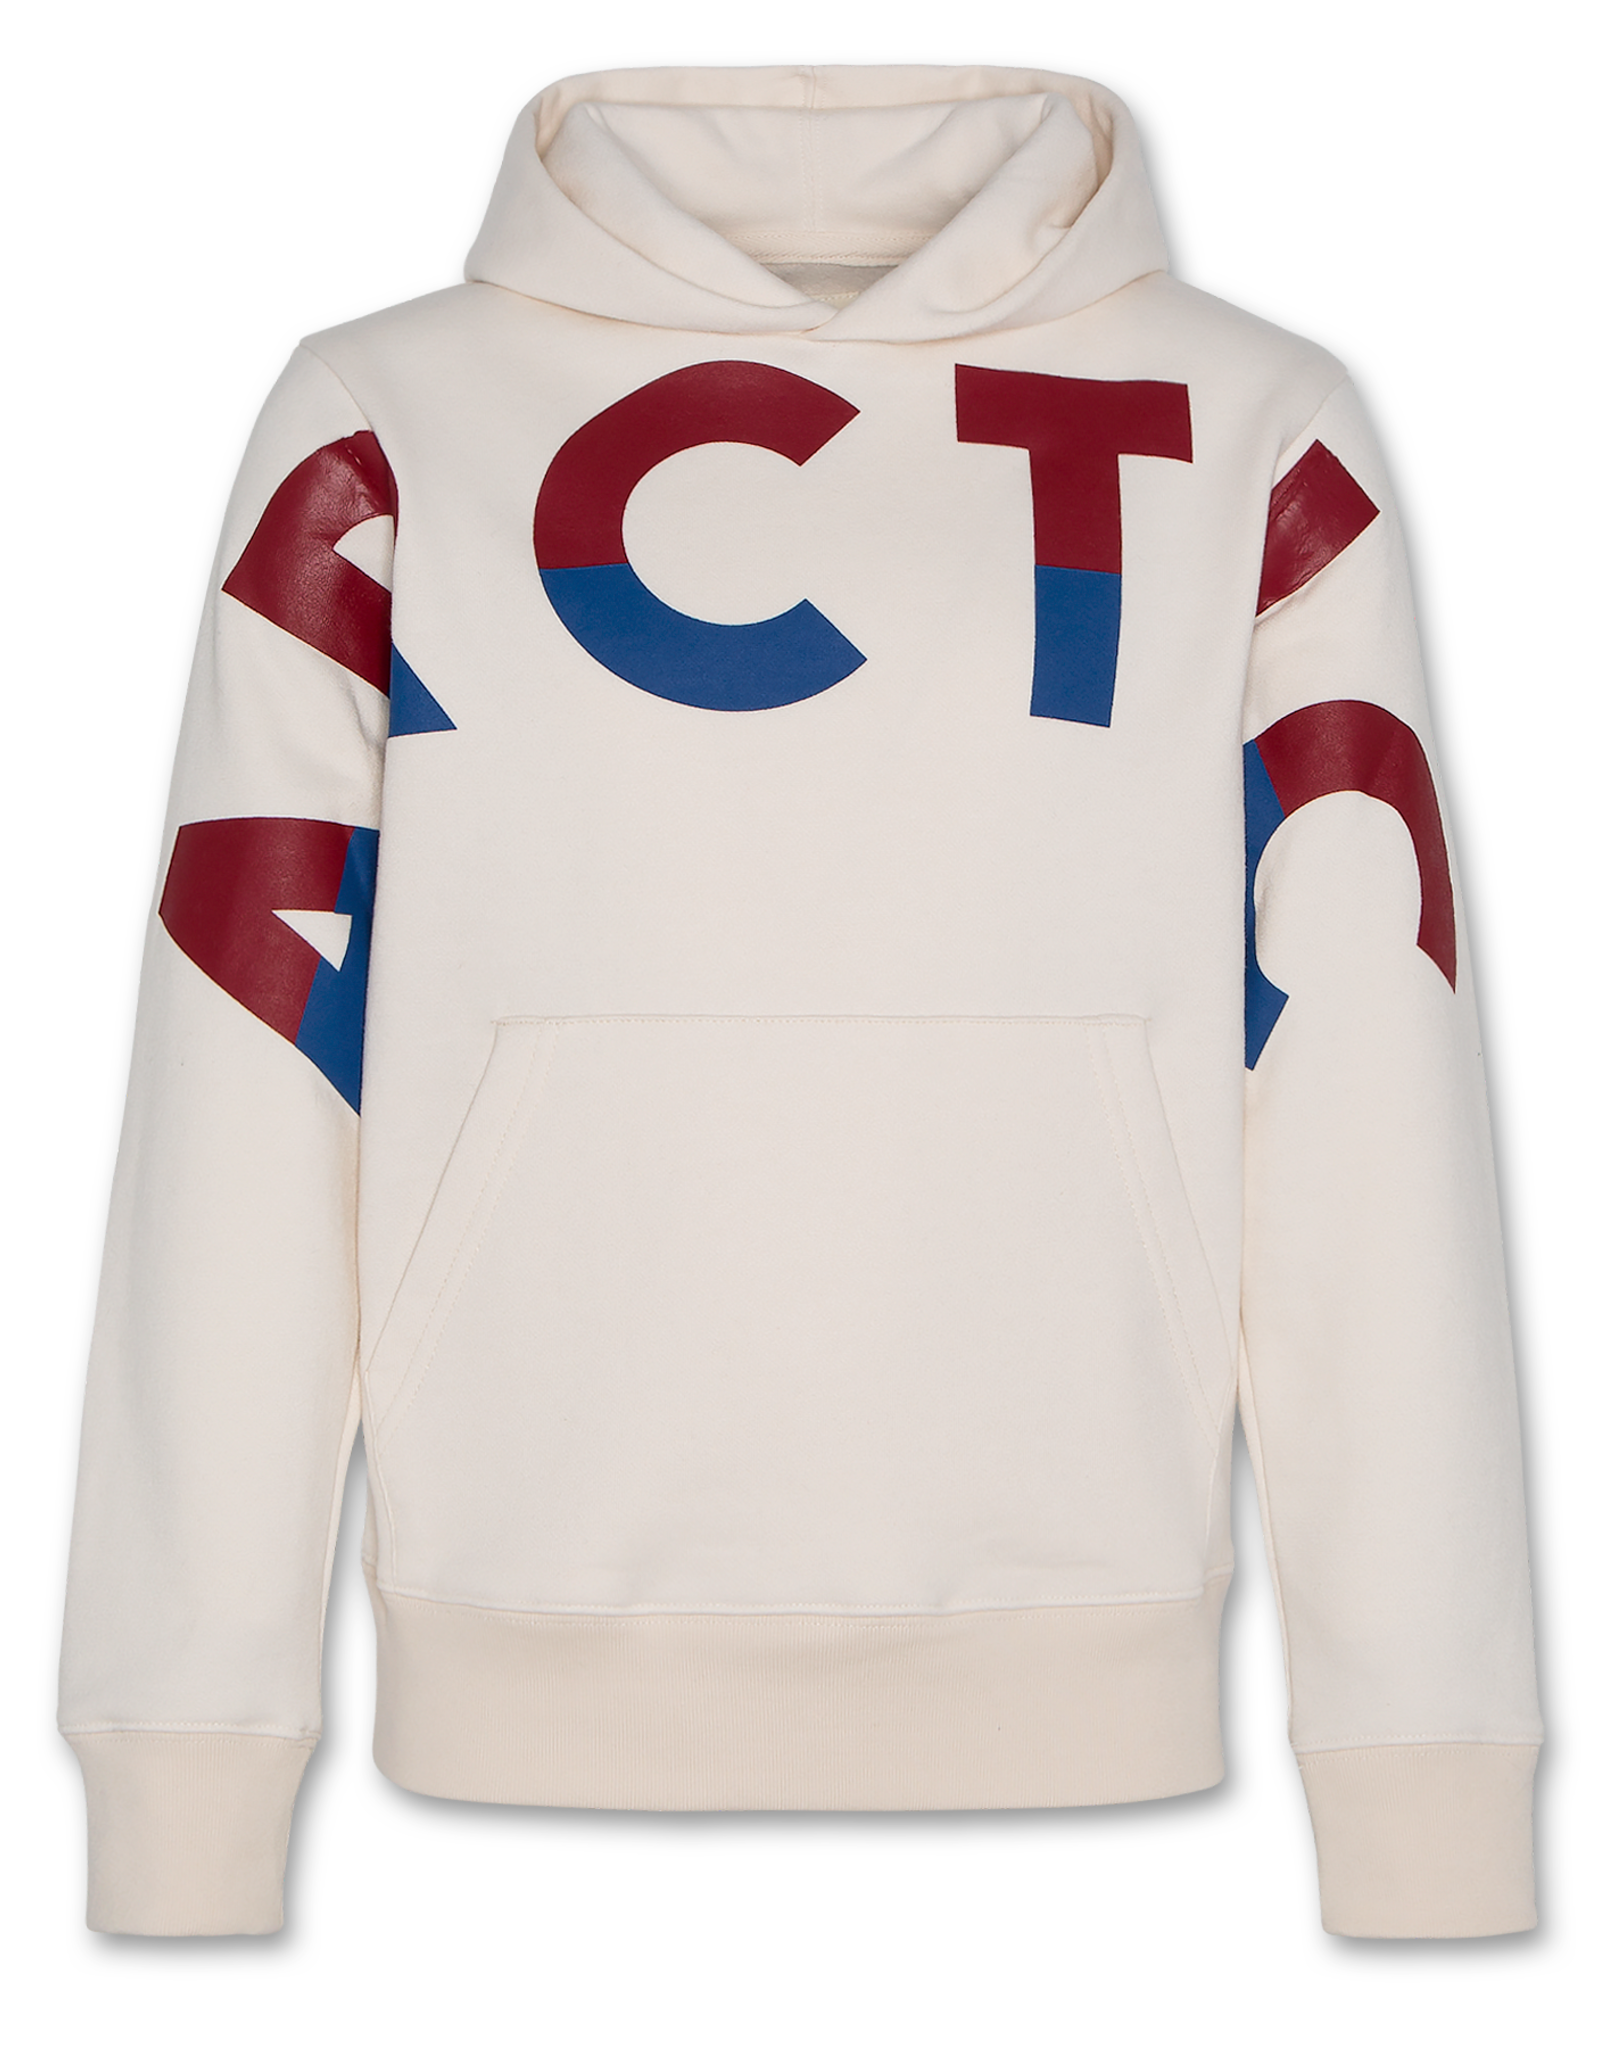 AMERICAN OUTFITTERS AO76 hoodie sweater artic raw